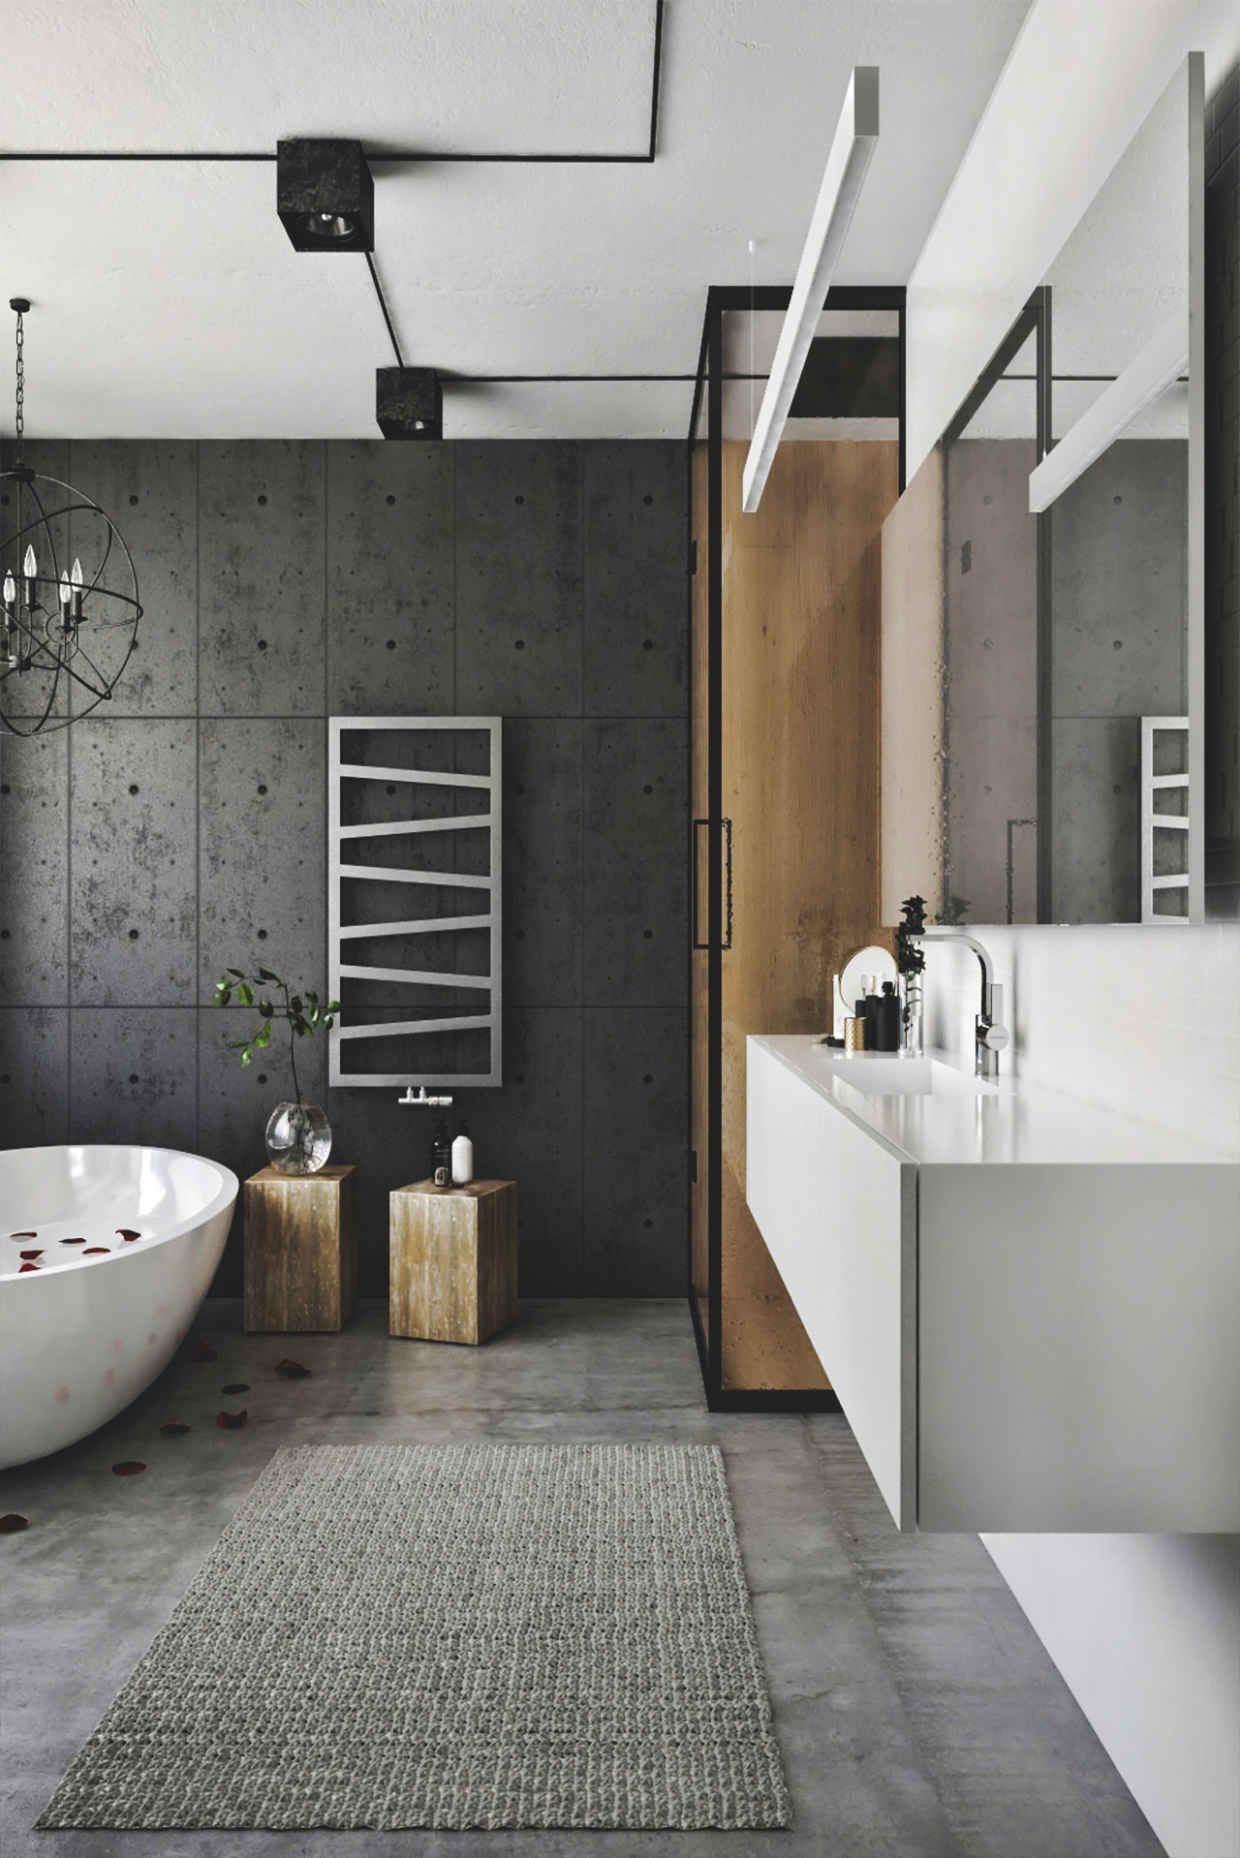 Bad Ideen Modern Weekly Inspiration 67 Bad Ideen Bathroom Modern Bathroom